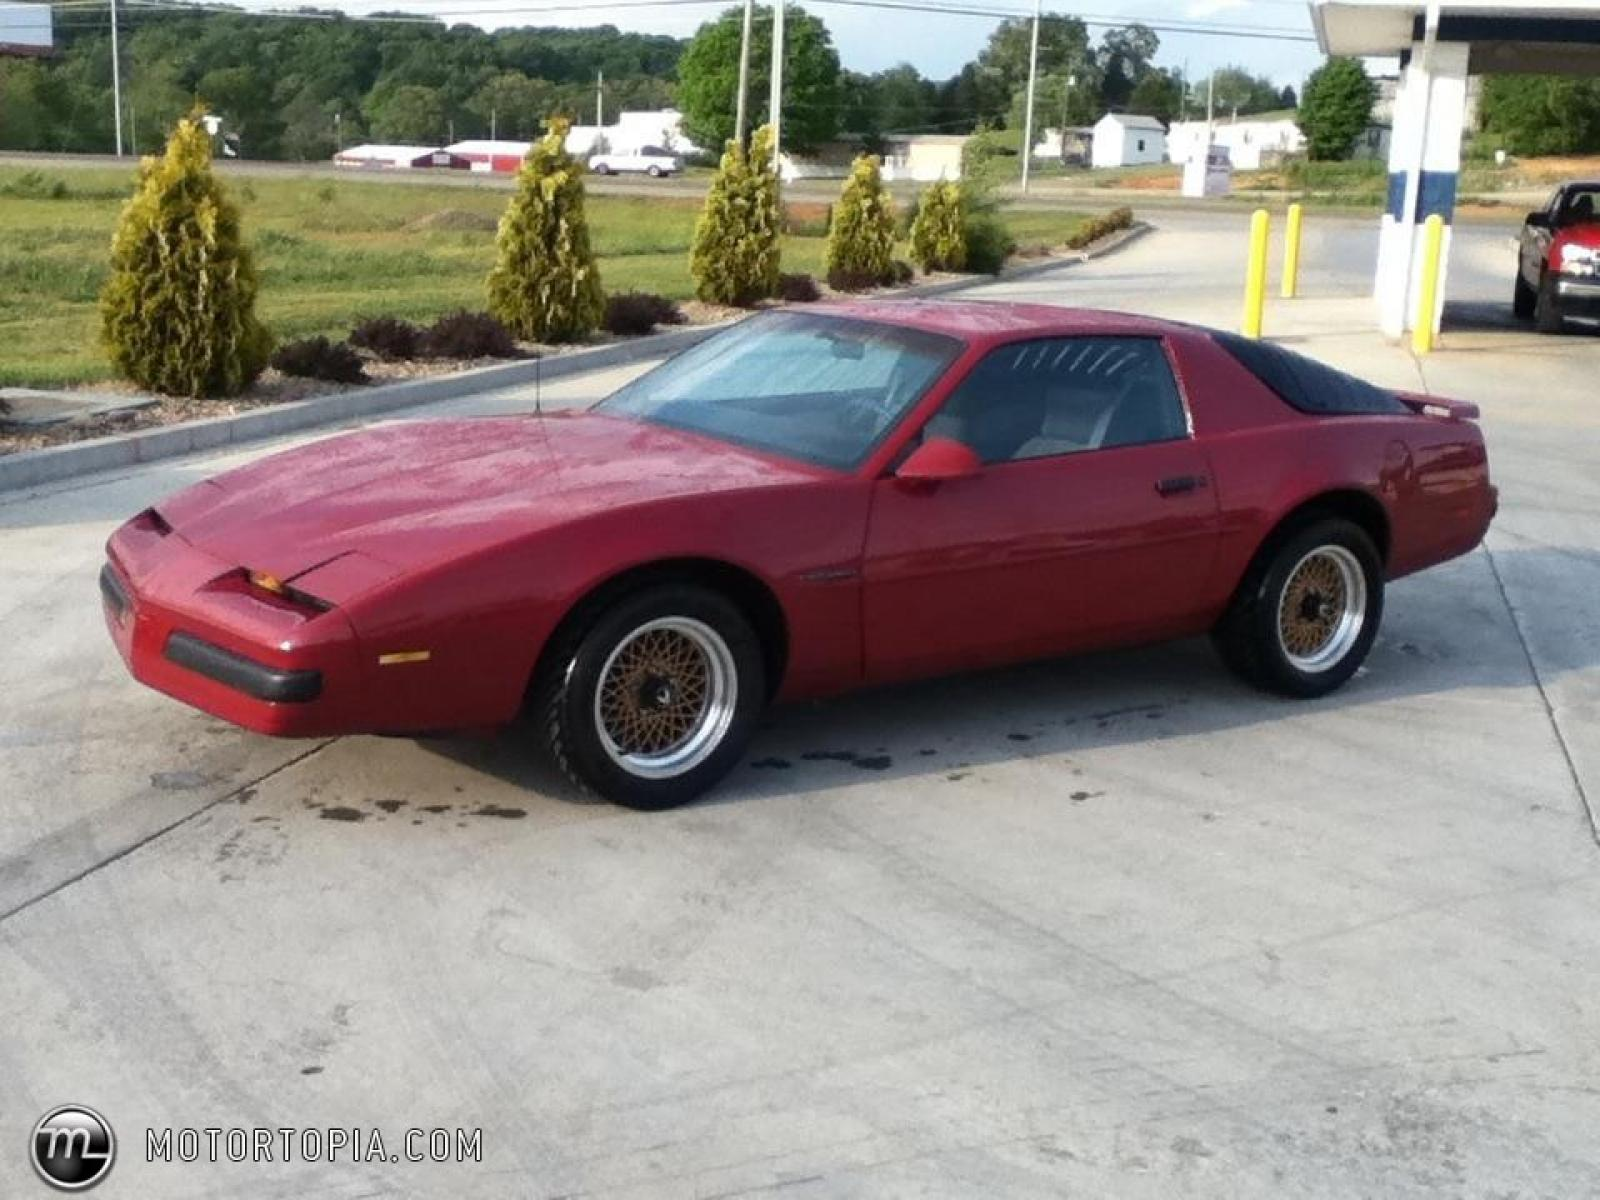 800 1024 1280 1600 origin 1990 Pontiac Firebird ...